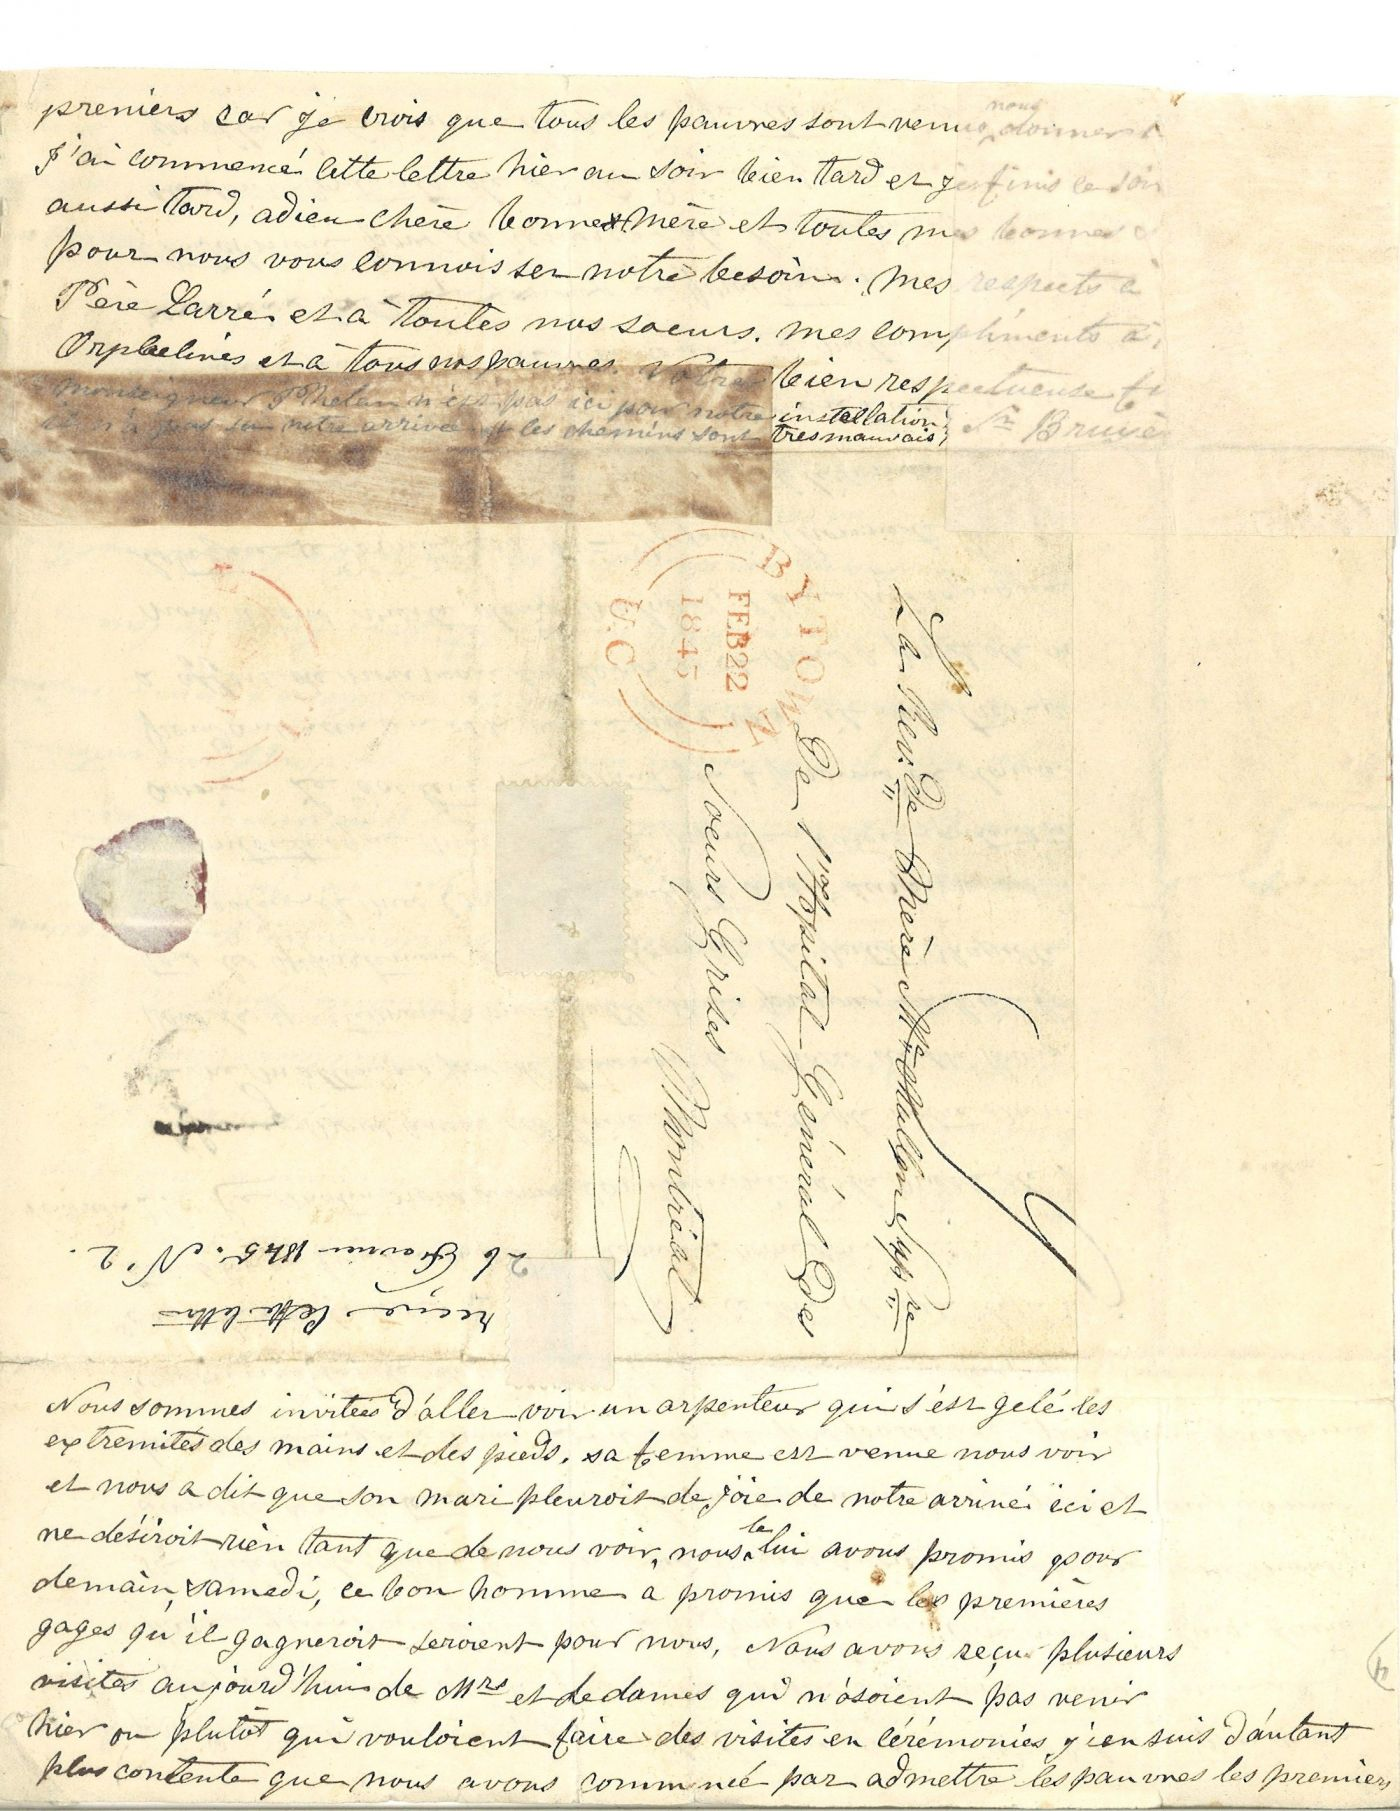 Letters handwritten in French. The document is numbered, and the stamp of the Archives of the Grey Nuns of Montreal appears on pages 1 and 3. The first letter is signed by Sister Bruyère; the second letter is not signed. Page 6 includes the envelope of the letter with the postmark and date of receipt.